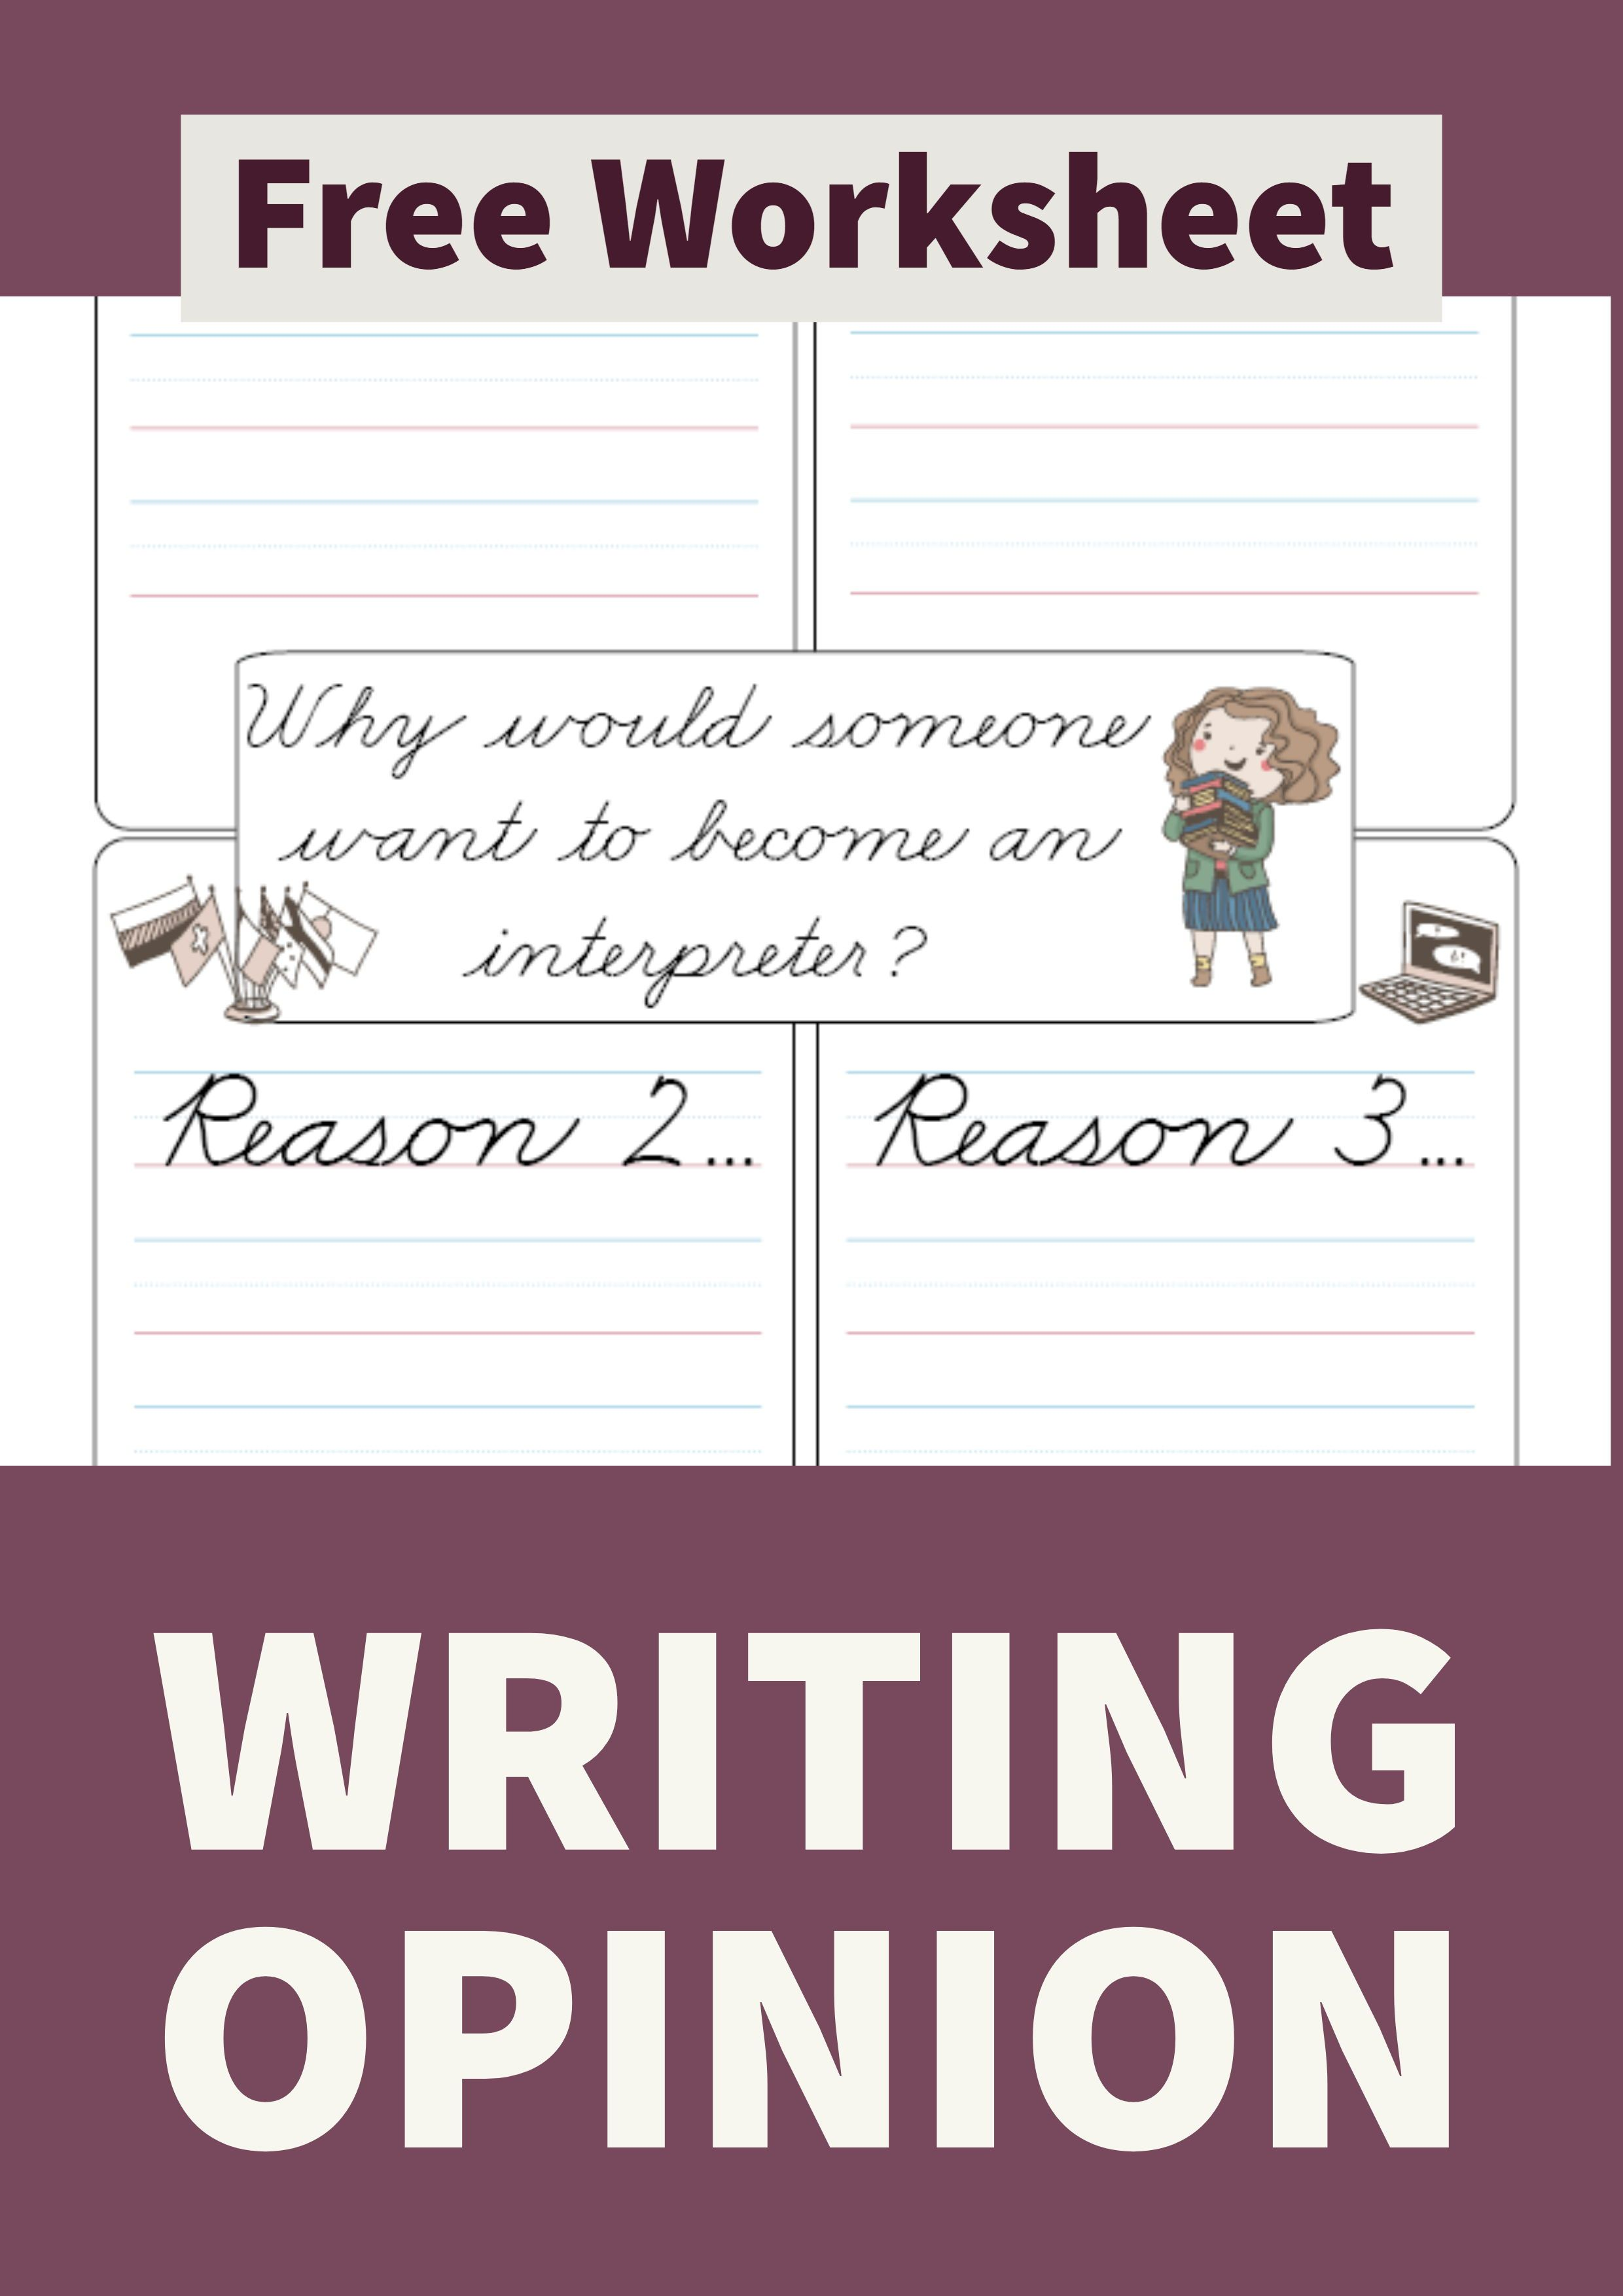 Interpreter Opinion Writing Cursive Primarylearning Org Free Homeschool Resources Freewriting Opinion Writing [ 3509 x 2480 Pixel ]